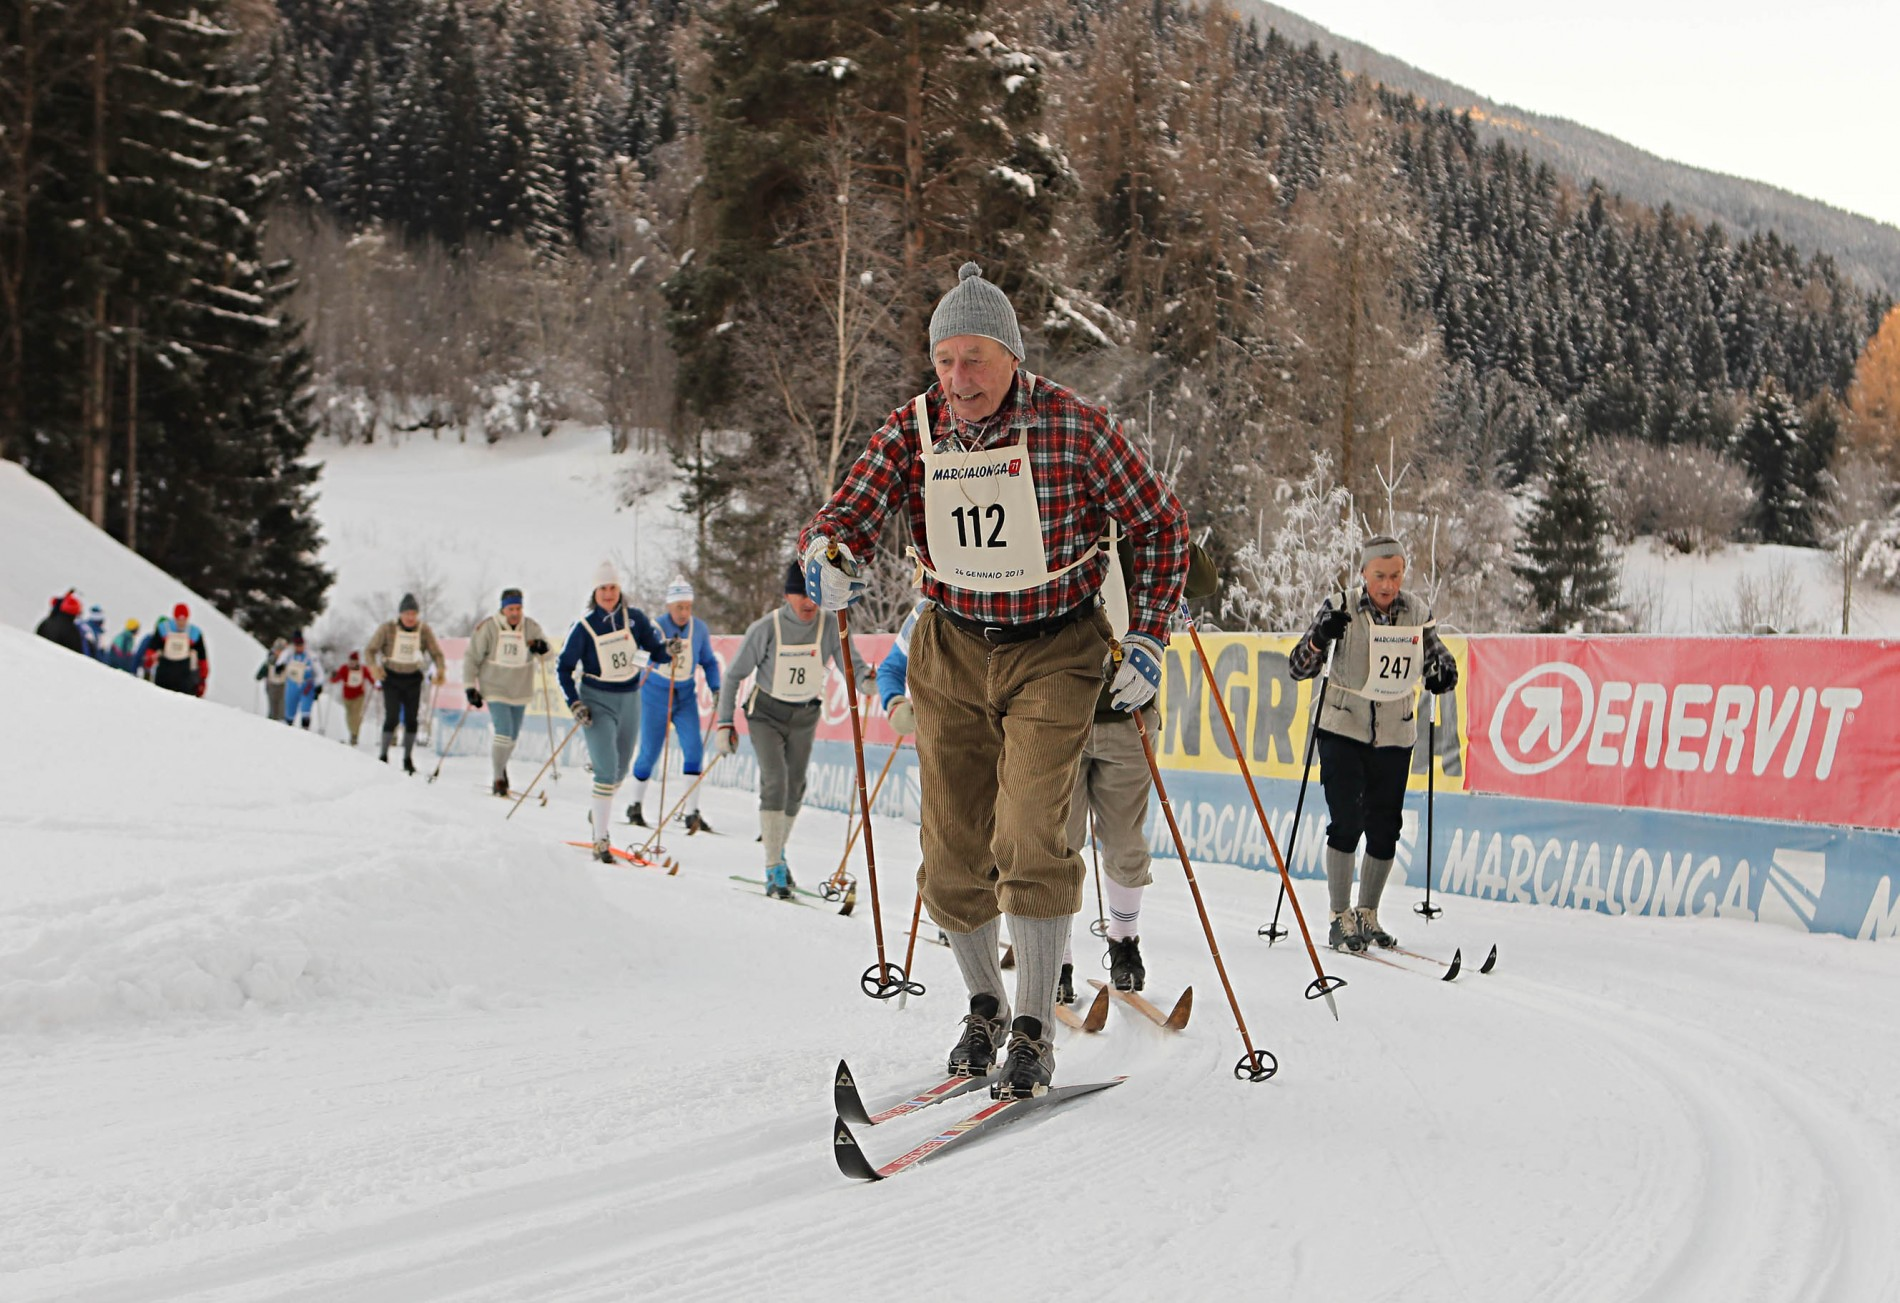 The Trentino's event is one of the most important worldwide cross-country skiing